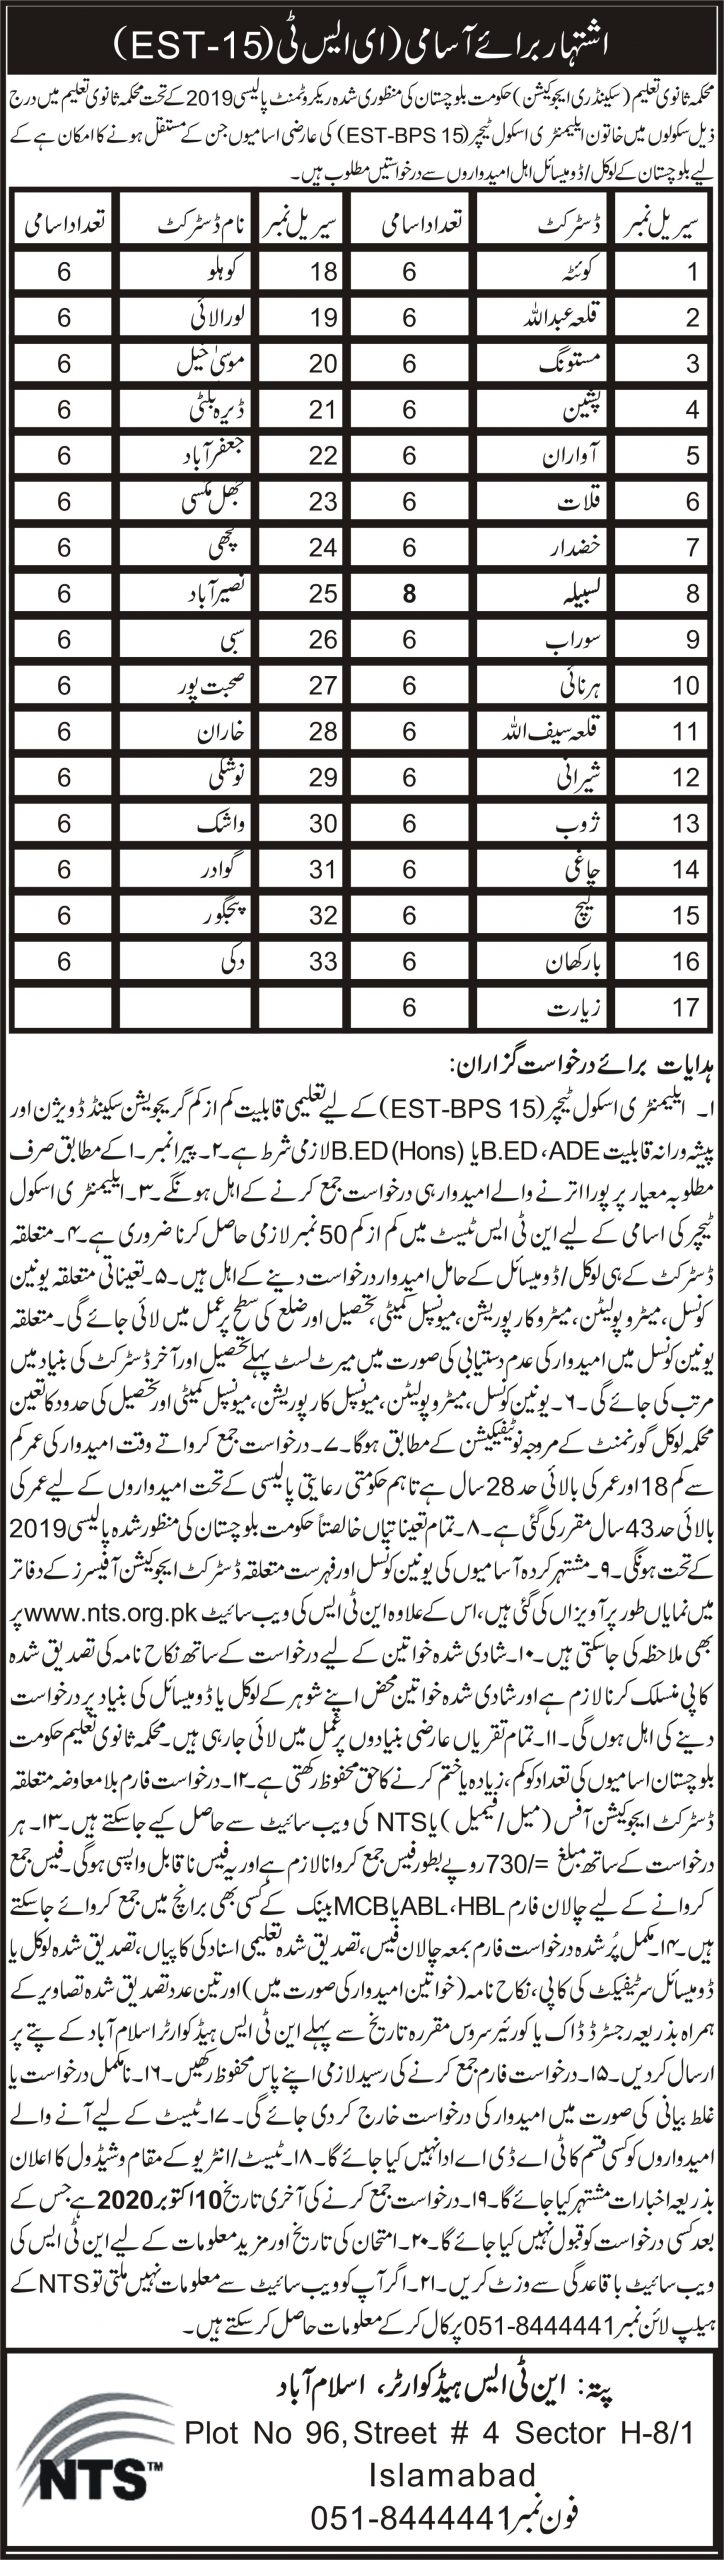 NTS Elementary School Teacher EST Balochistan Jobs 2020 Application Form Download Online